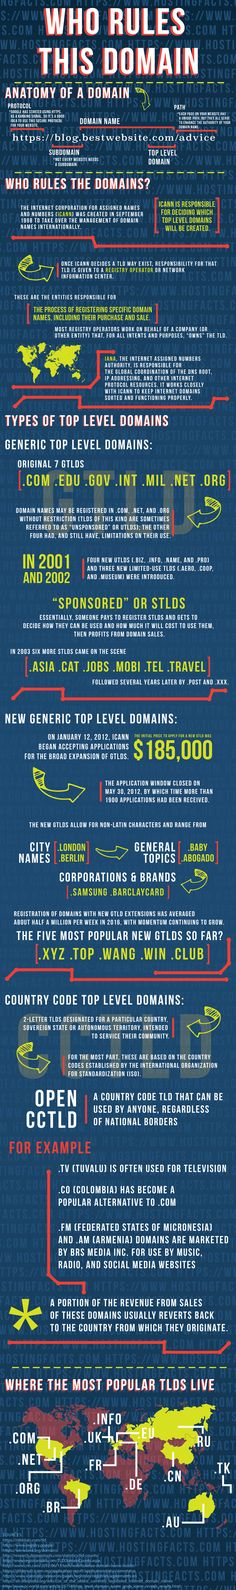 Why a Website Domain is a Marketing Tool [Infographic]